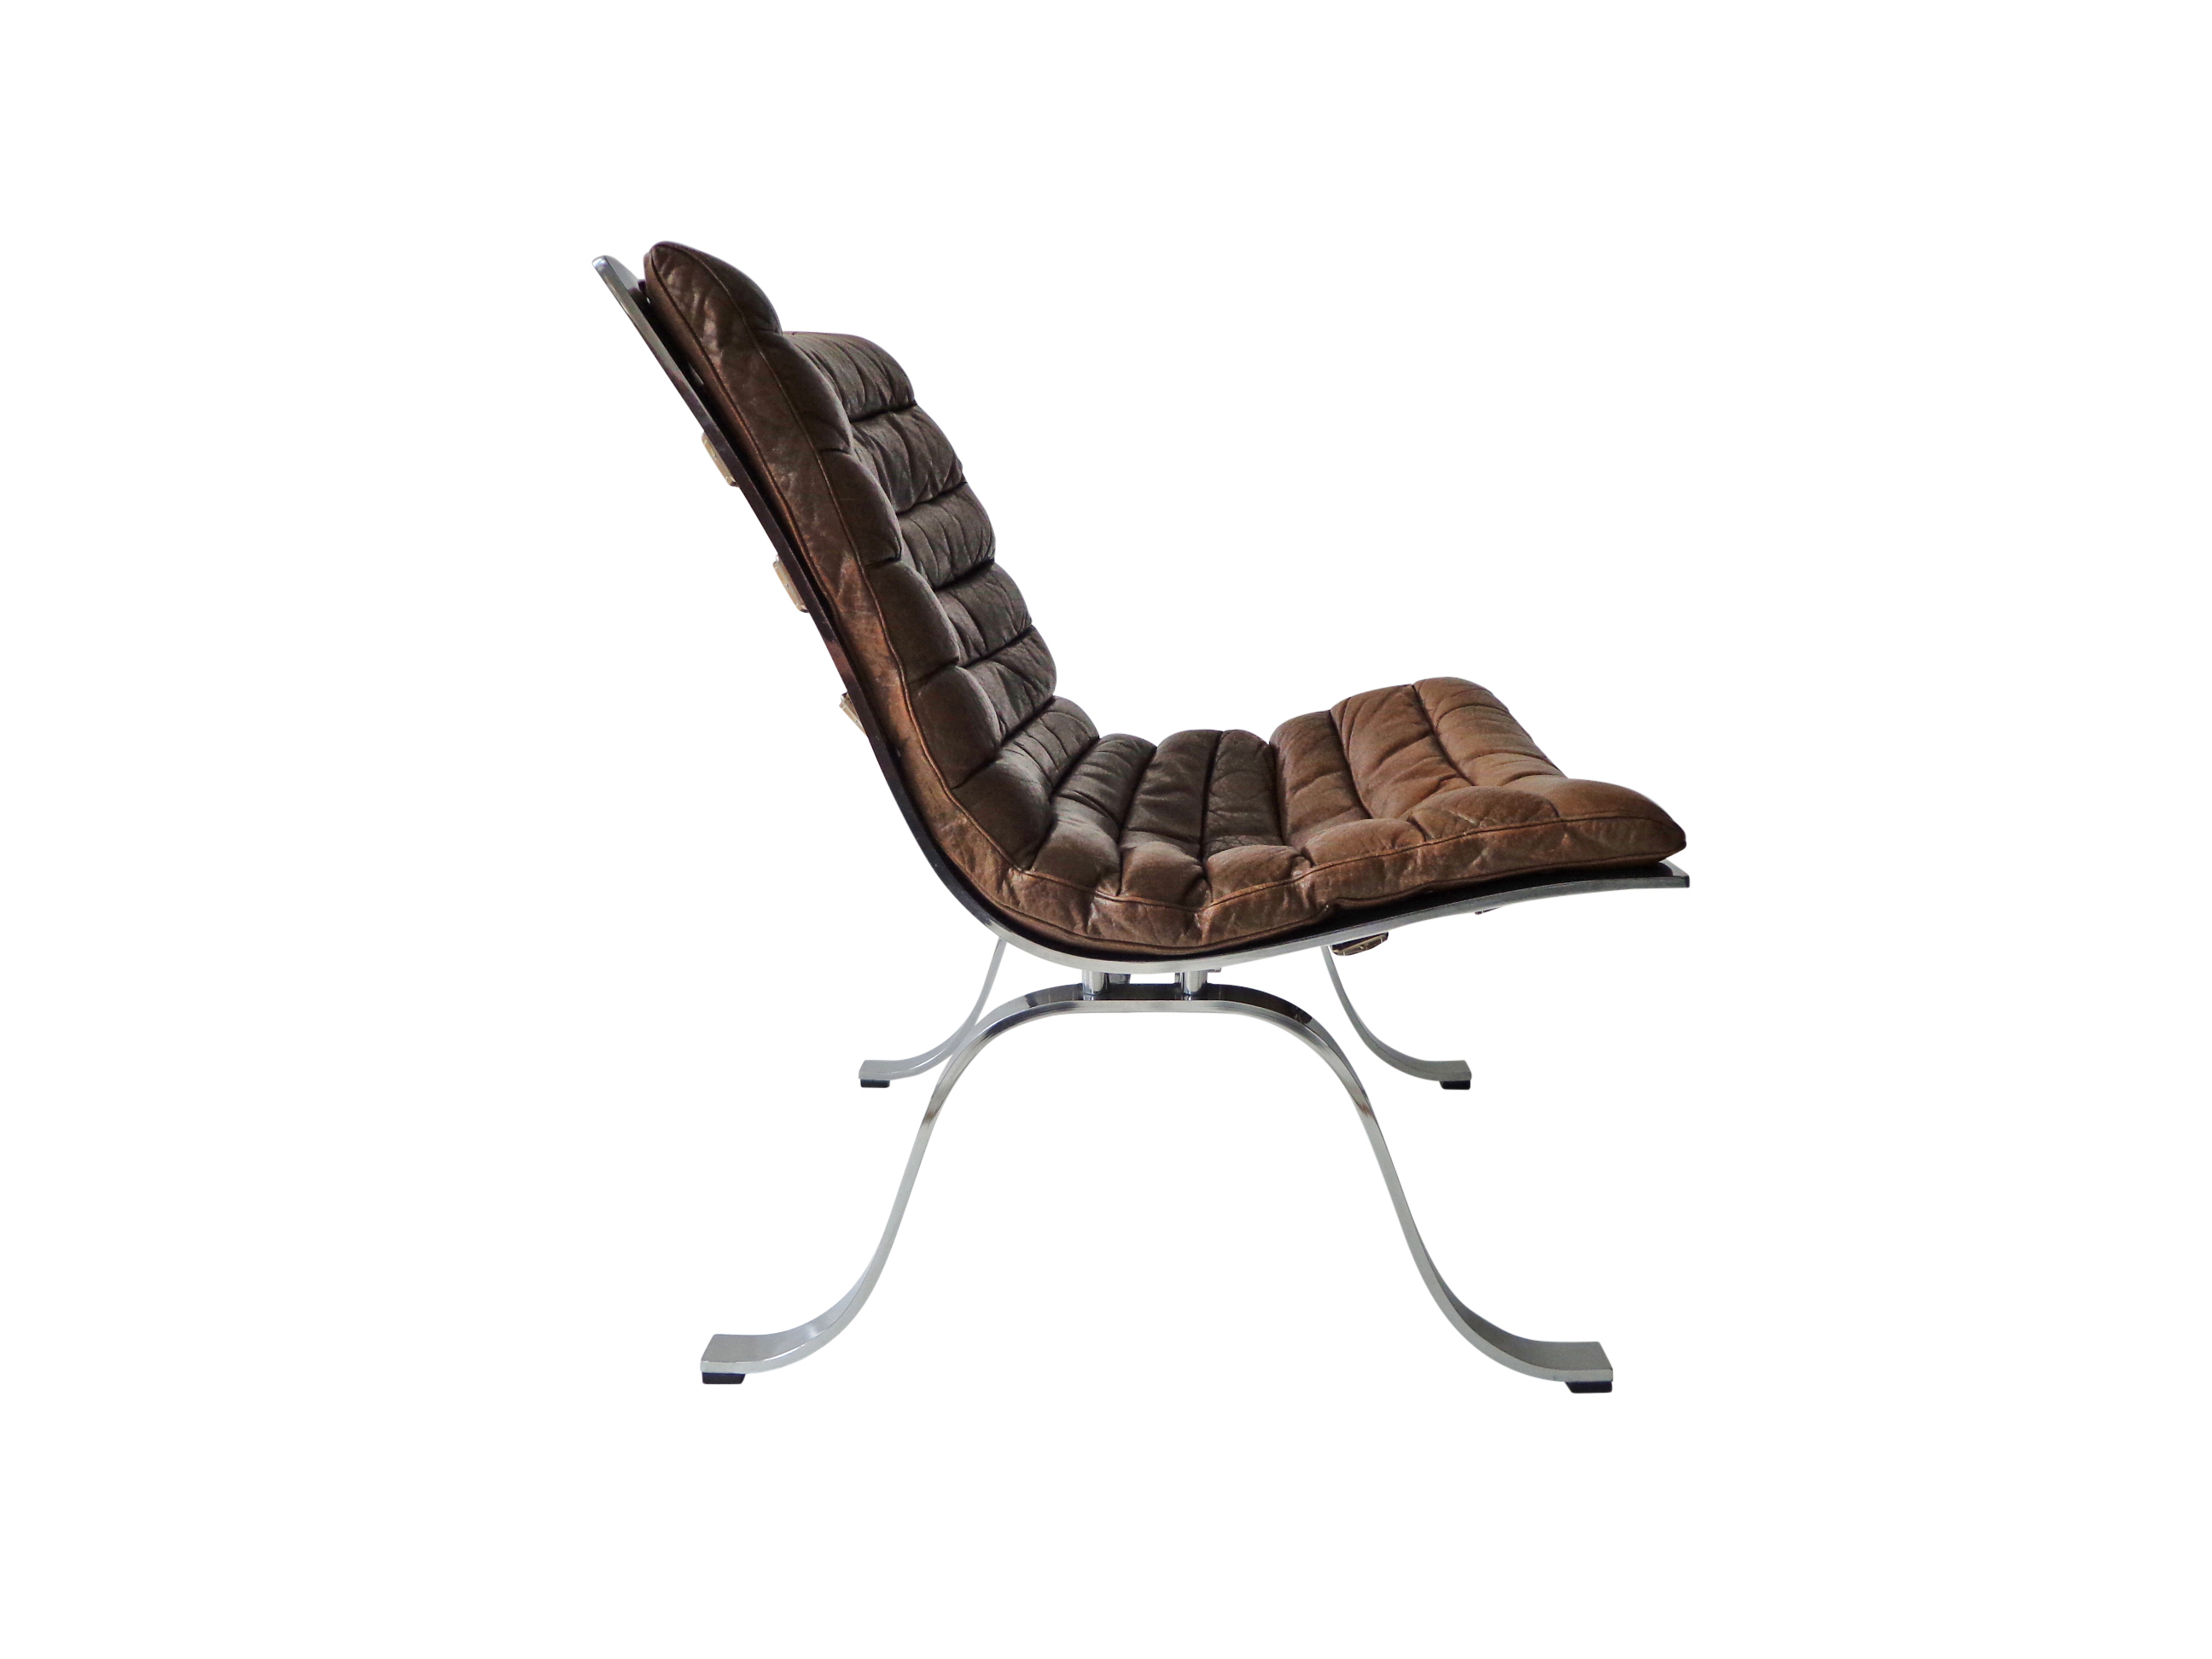 Arne Norell 'Ariet' Easy chair